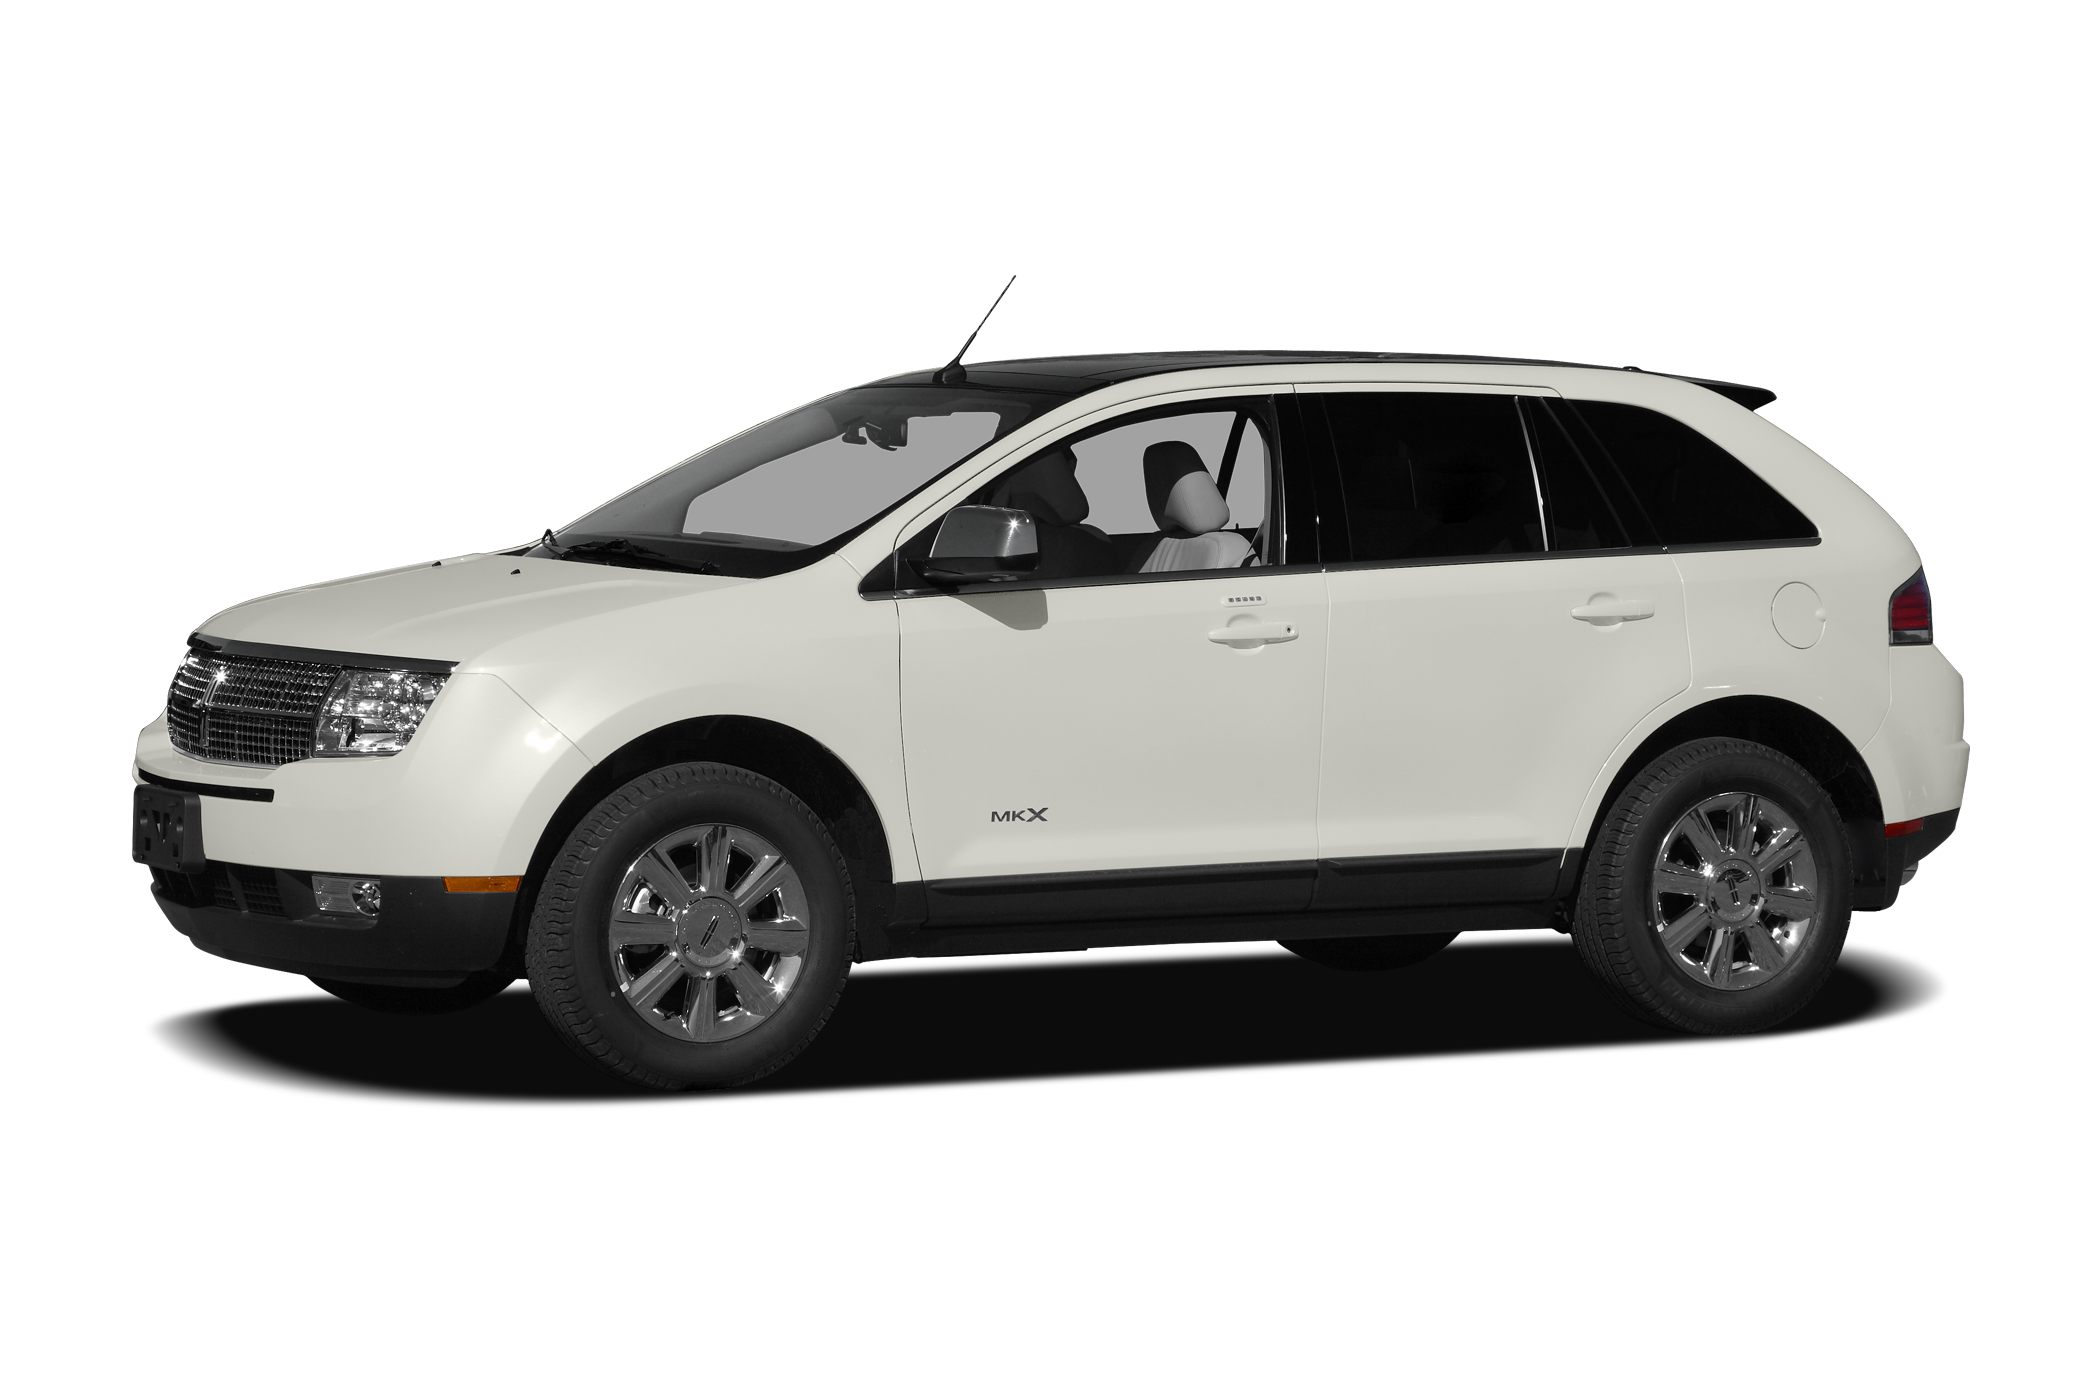 2008 Lincoln MKX SUV for sale in Rhinelander for $18,985 with 59,118 miles.